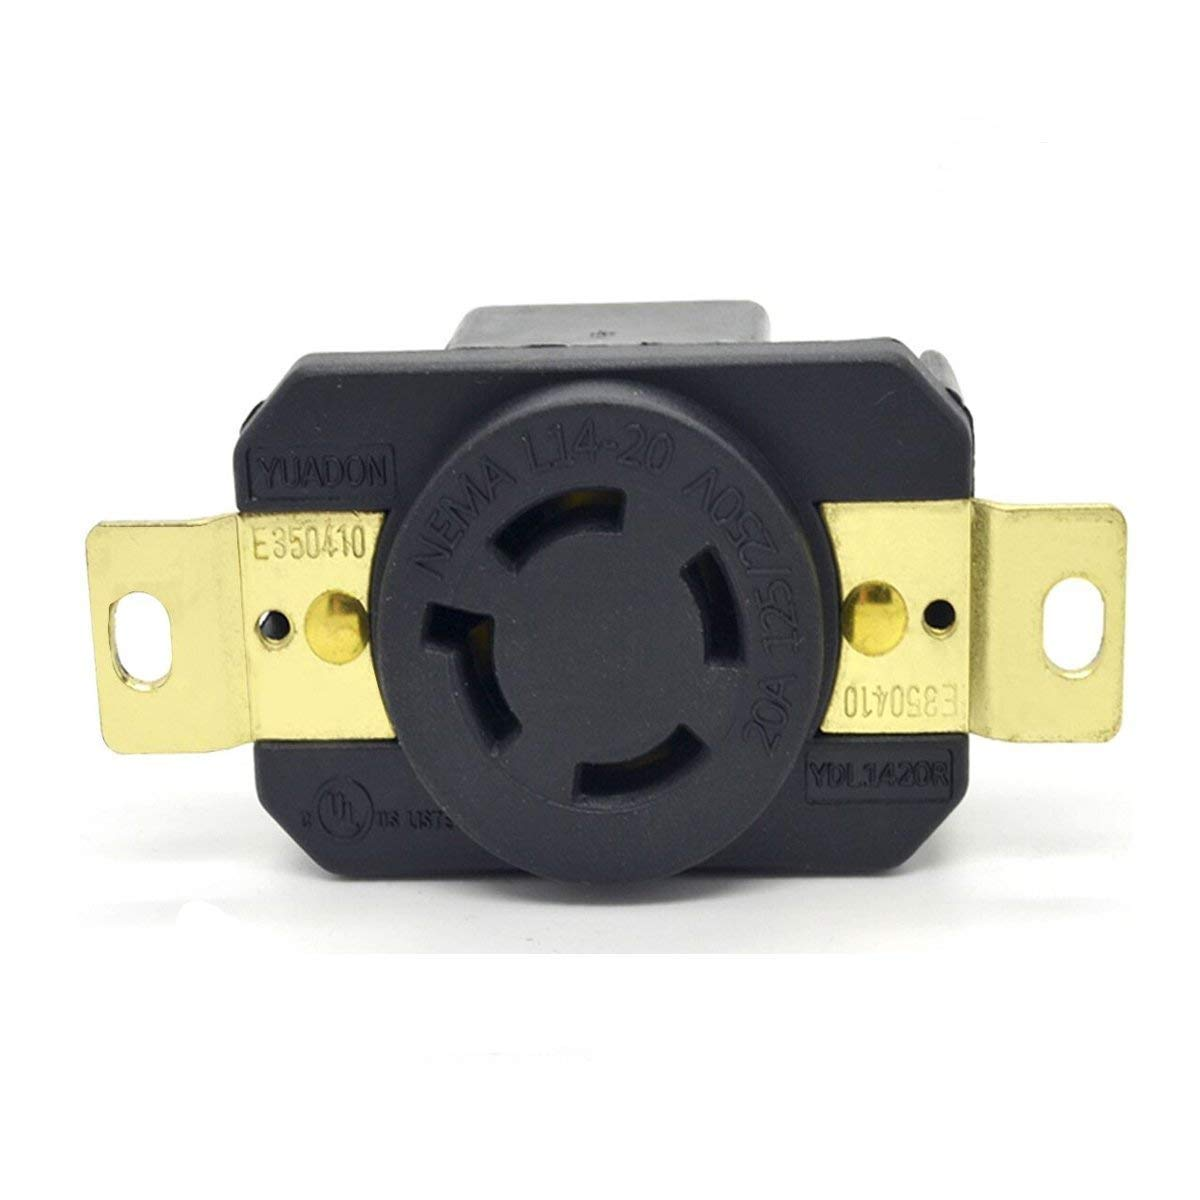 YuaDon UL Listed 20A 125/250V NEMA L14-20R AC Twist Lock Receptacle Connector Socket,3 Pole,4 Wire(3P+E),Grounding,Impact Duponty Nylon Housing,Industrial Grade